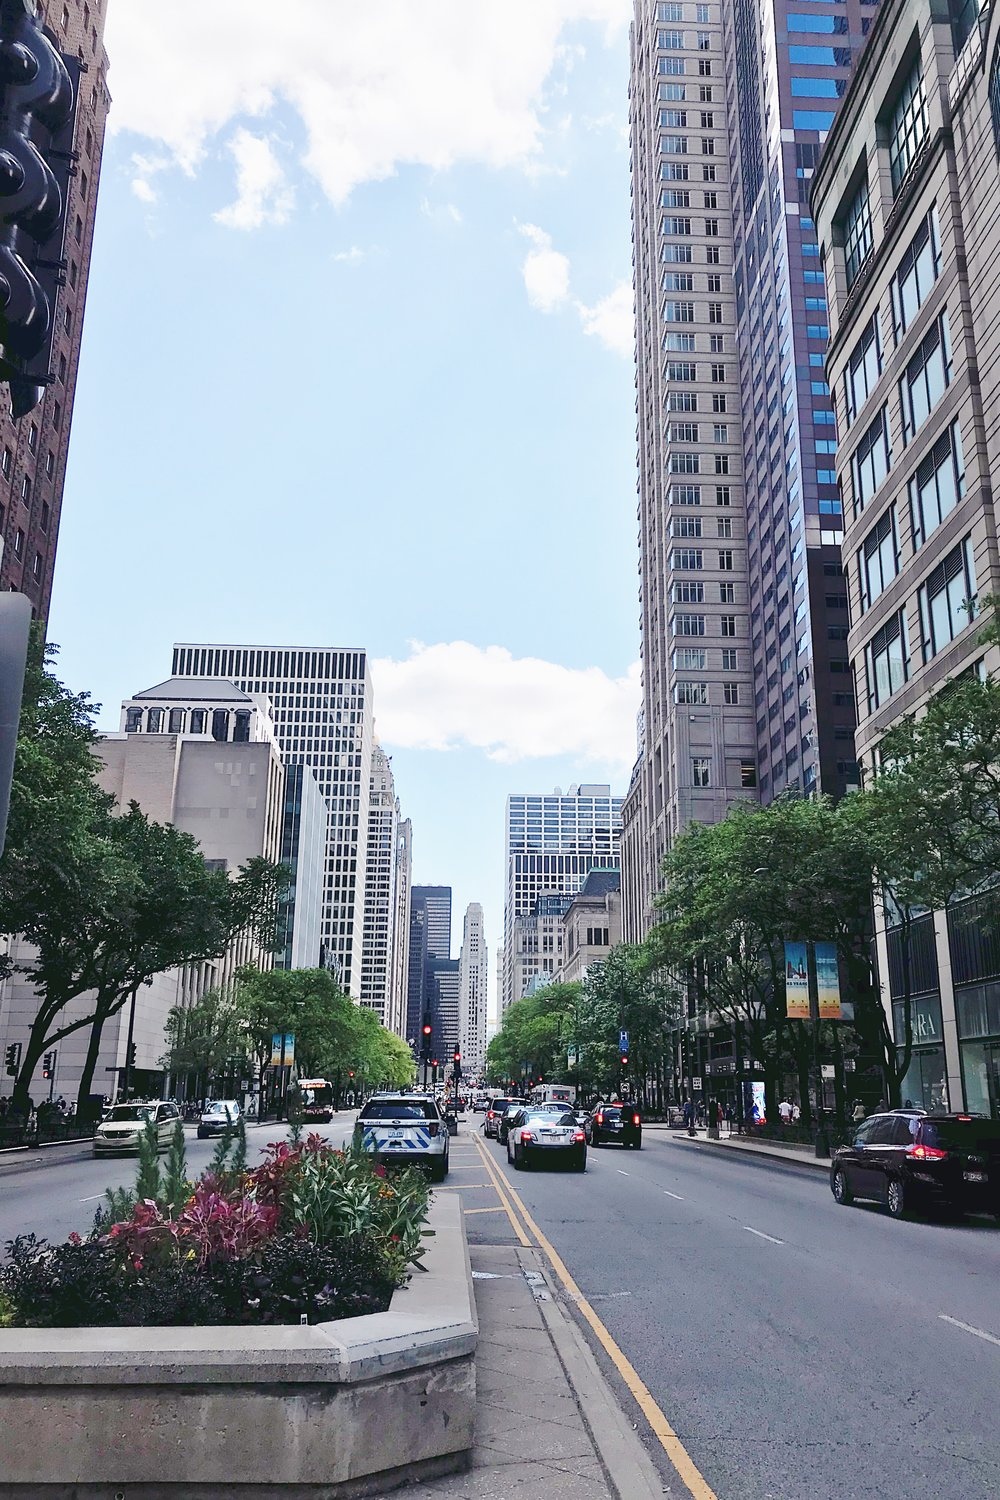 A view down Michigan Avenue.